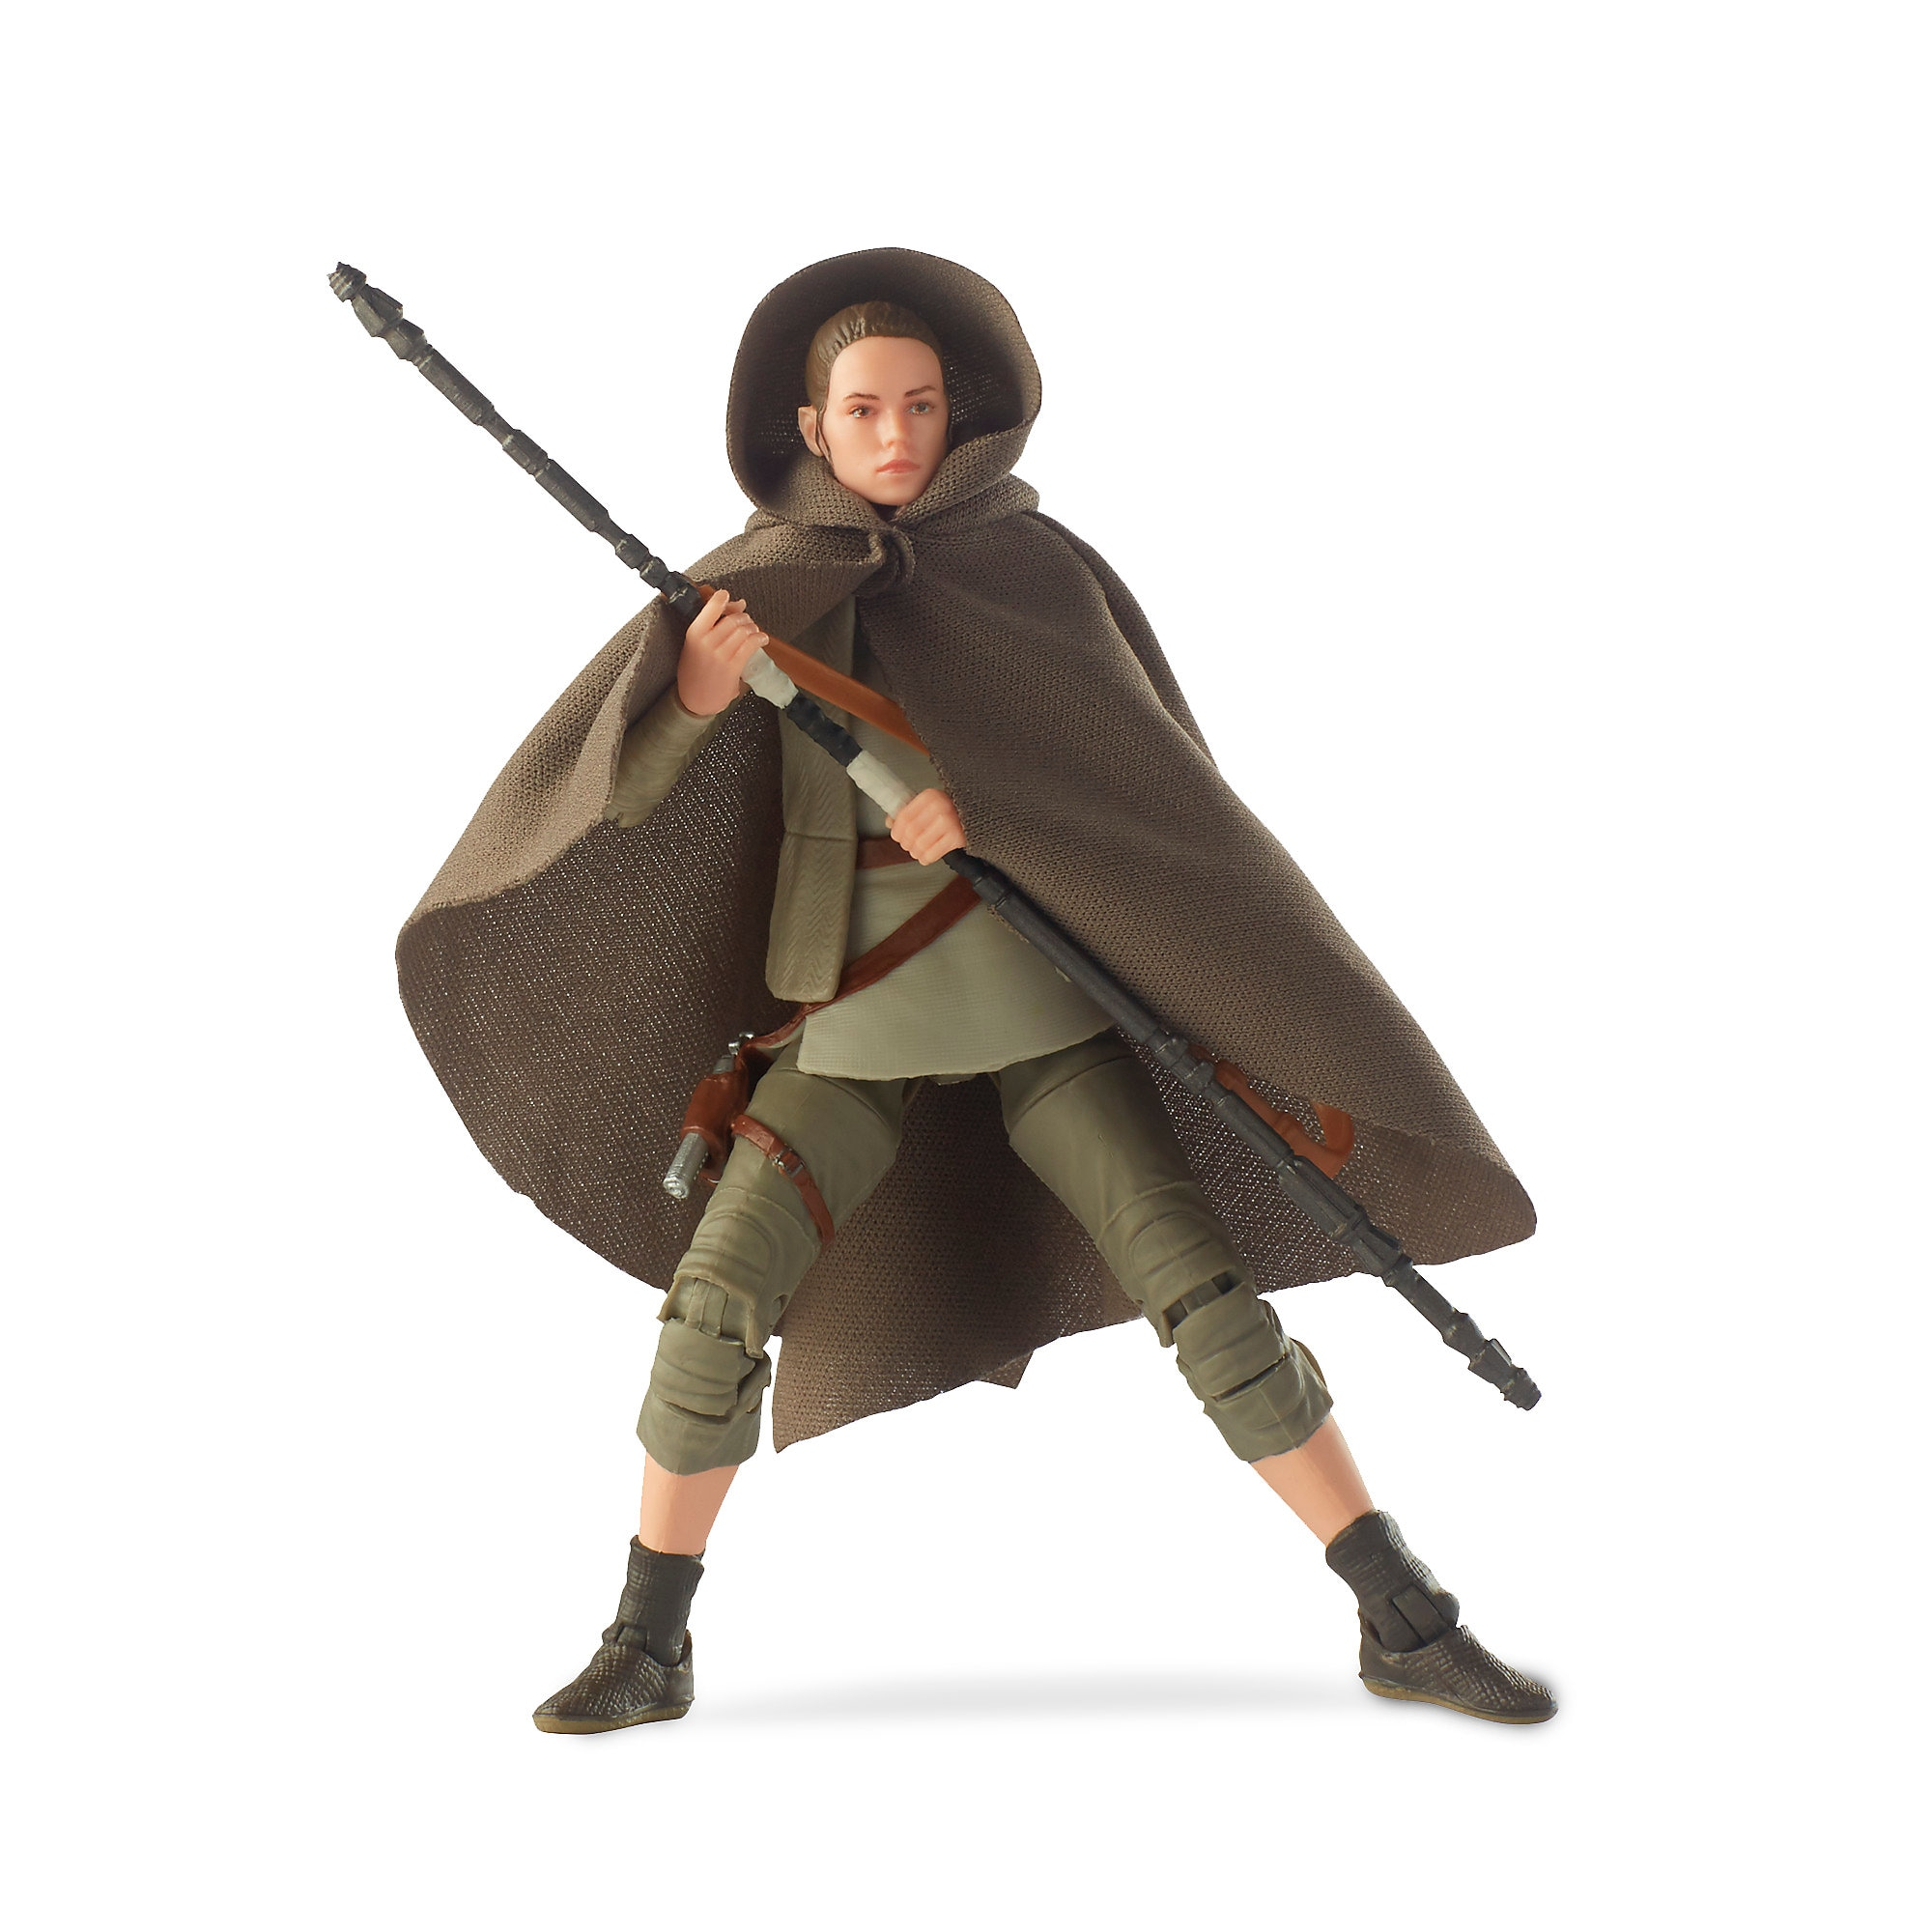 Rey Action Figure - Star Wars: The Last Jedi - The Black Series